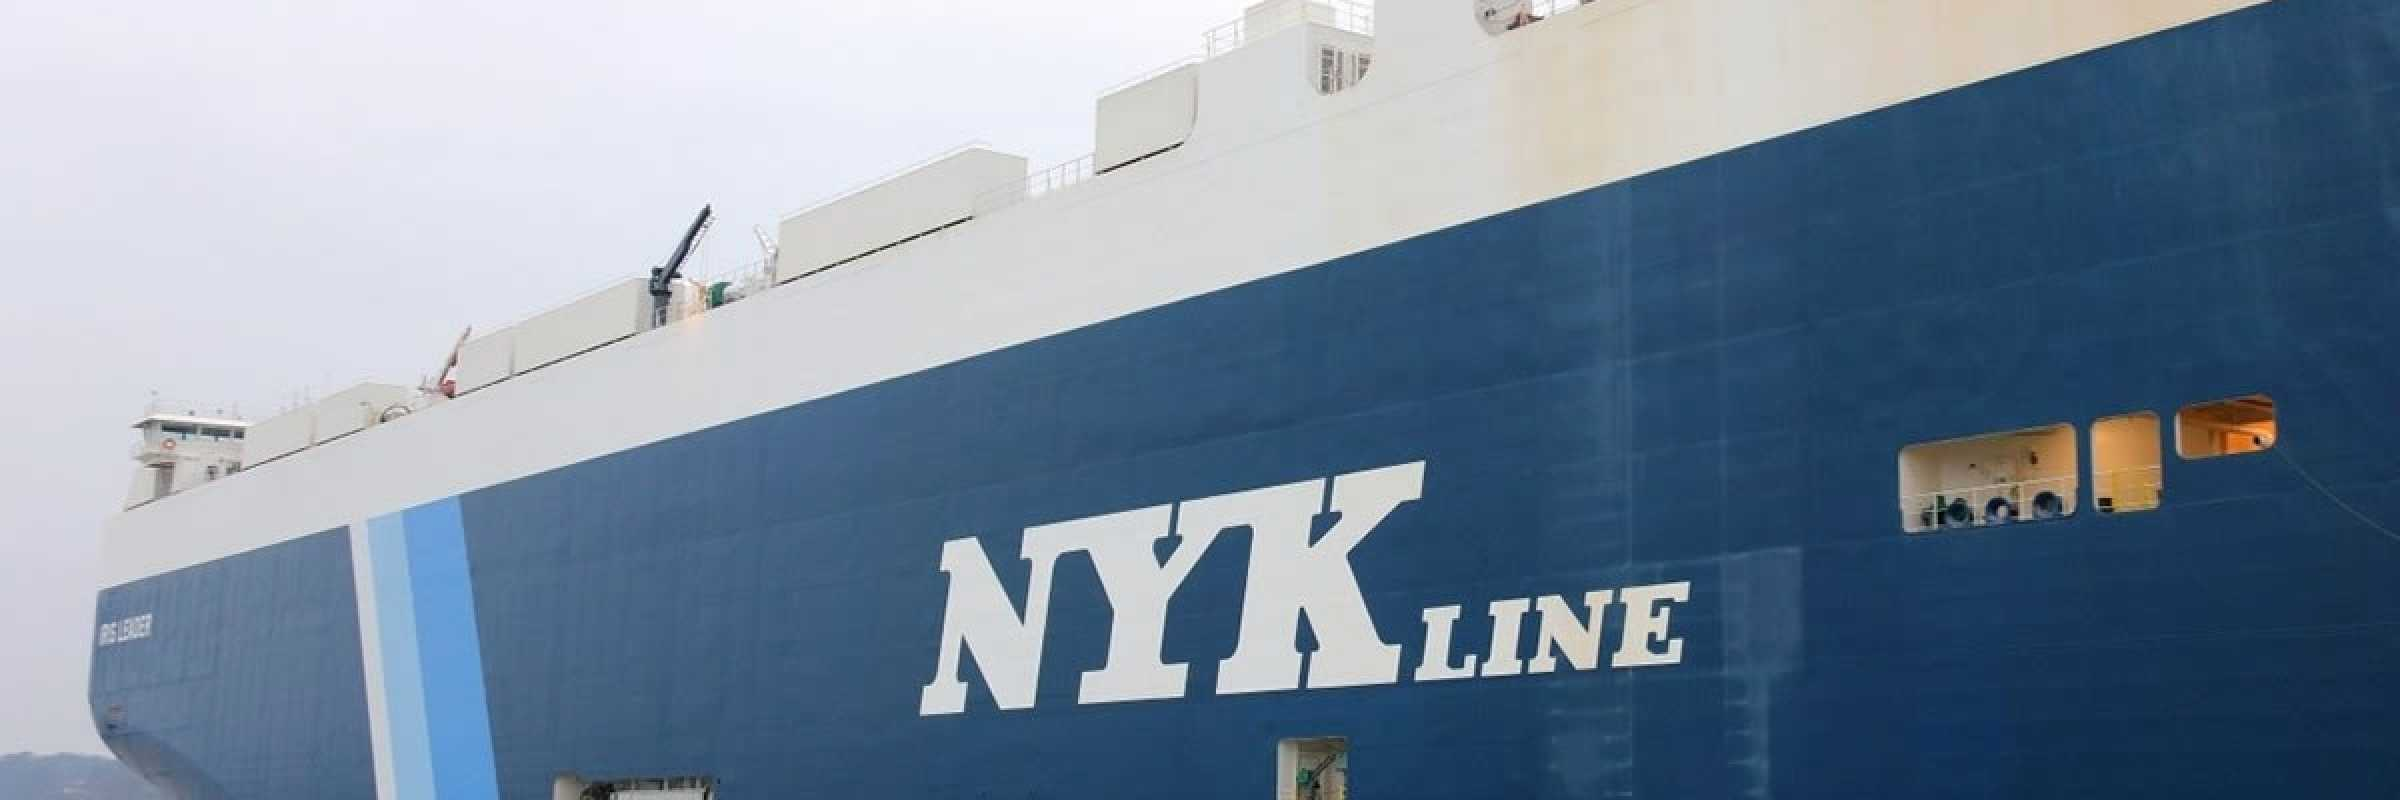 NYK trials autonomous ship in claimed world first